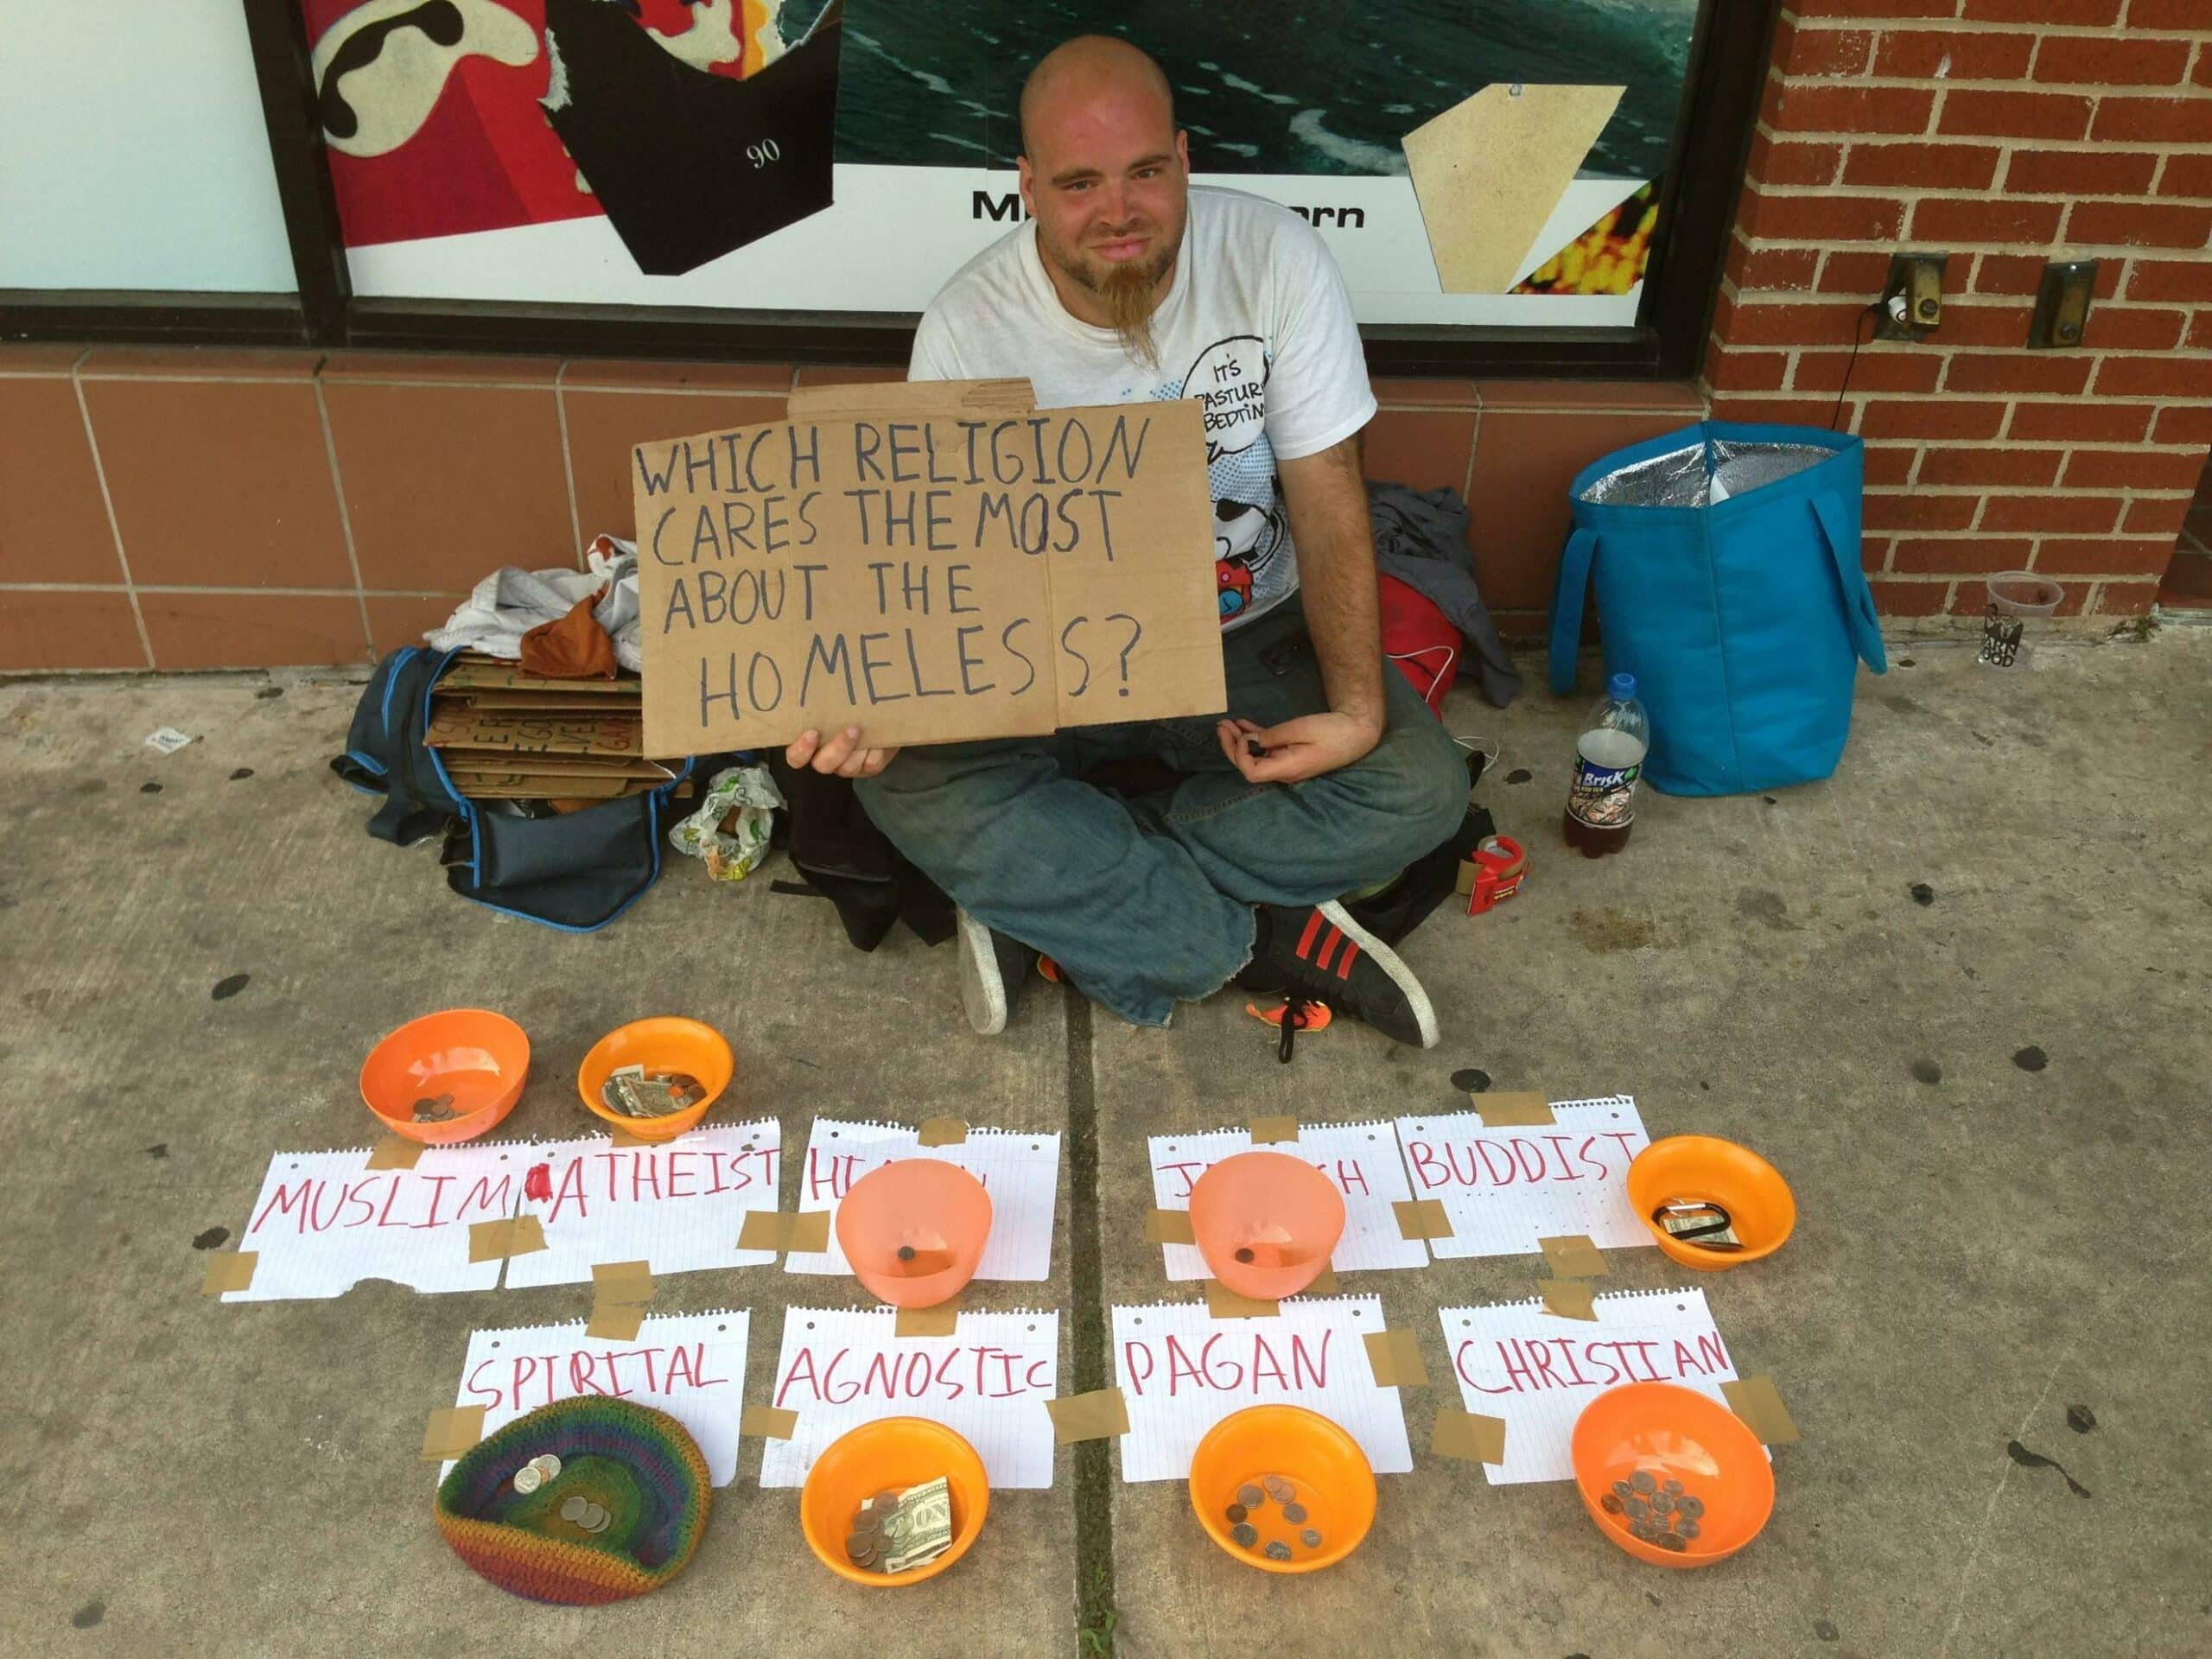 homeless atheism